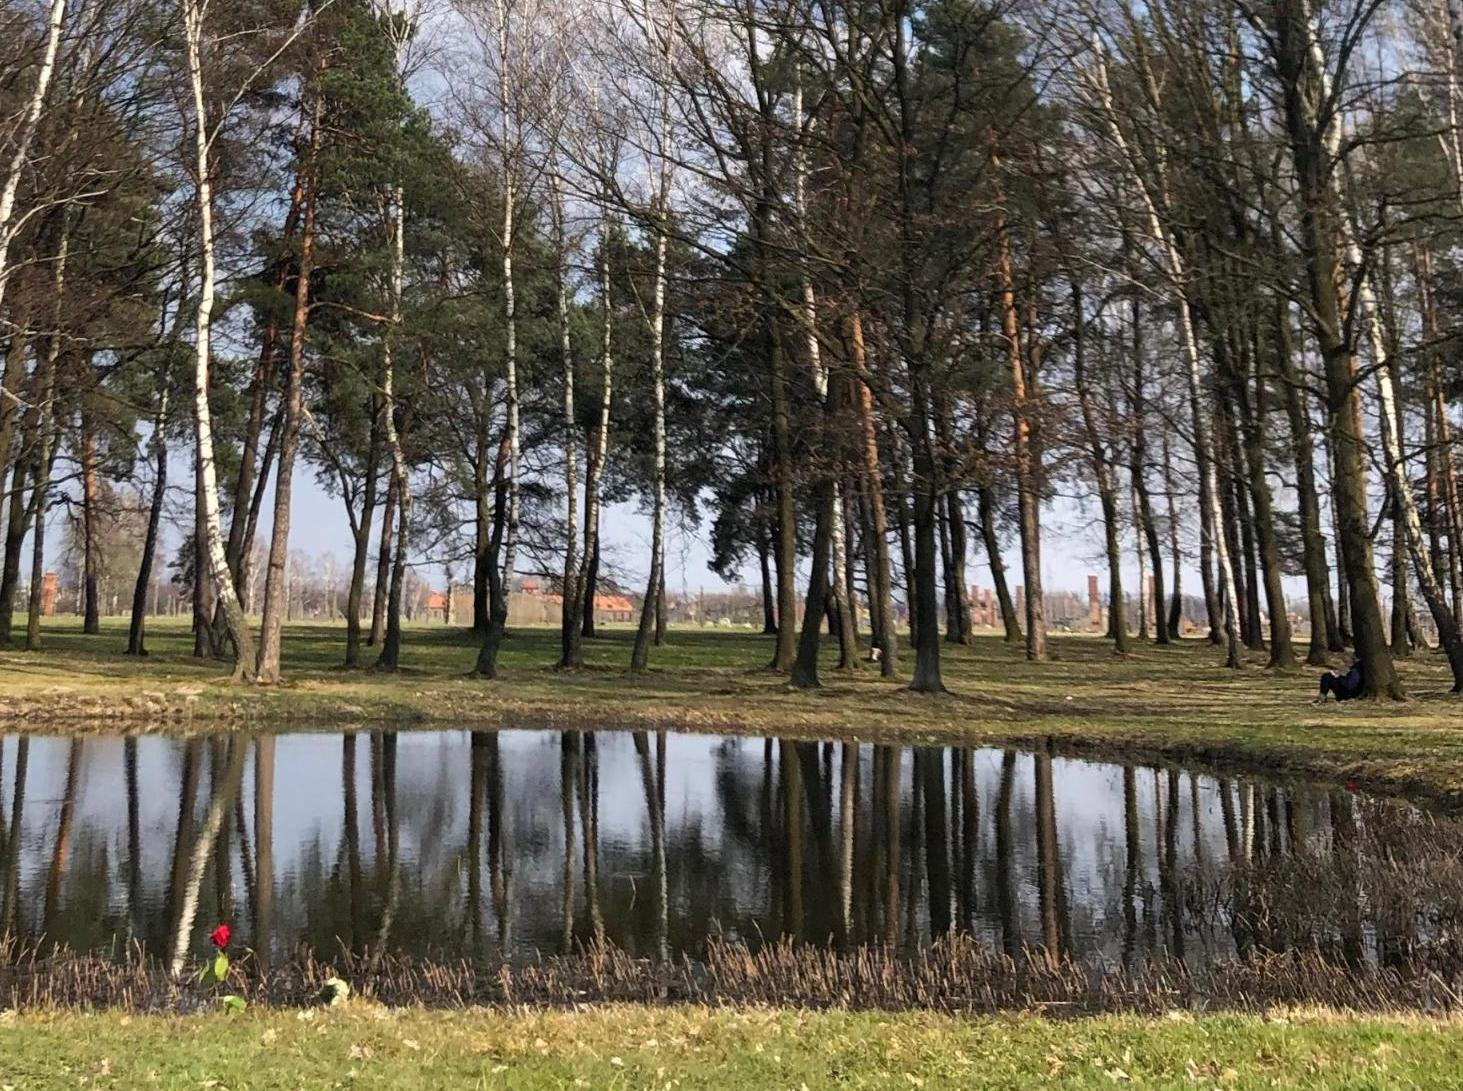 Photo of Birkenau ash pond, a single red flower growing at its bank.